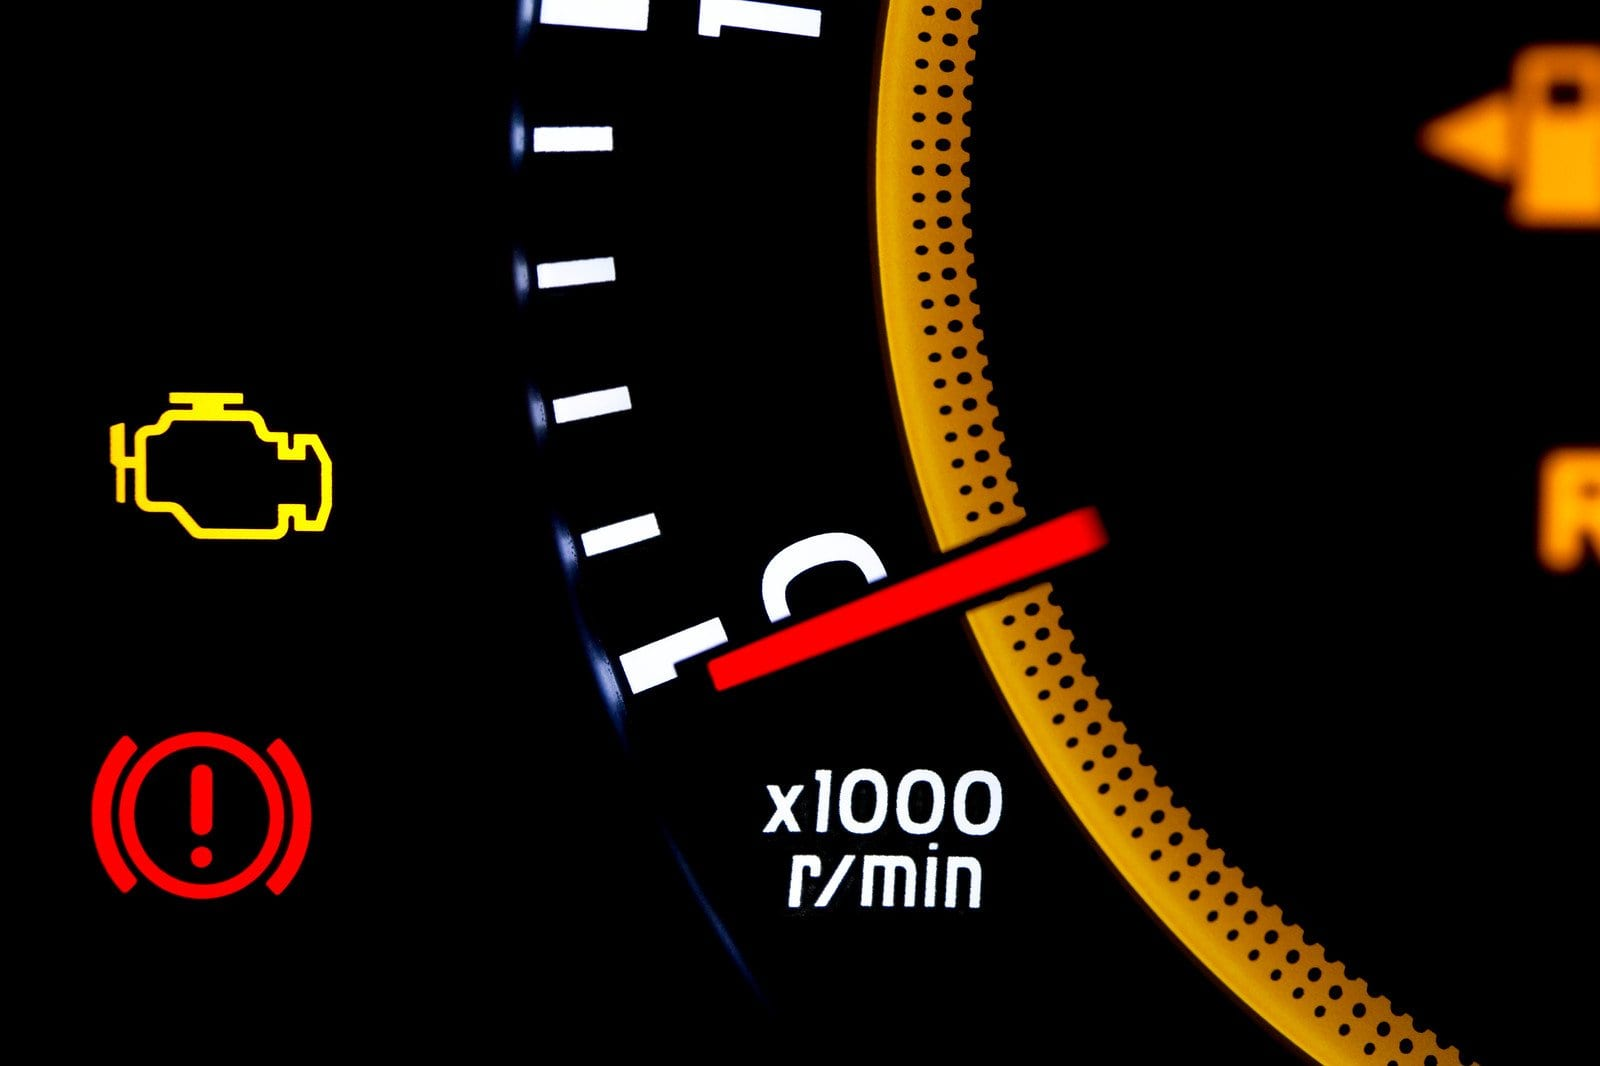 Ah Yes The Infamous Check Engine Light Most Late Model Vehicles Have This Cool Little Indicator On Dashboard Of Car To Give Us An Early